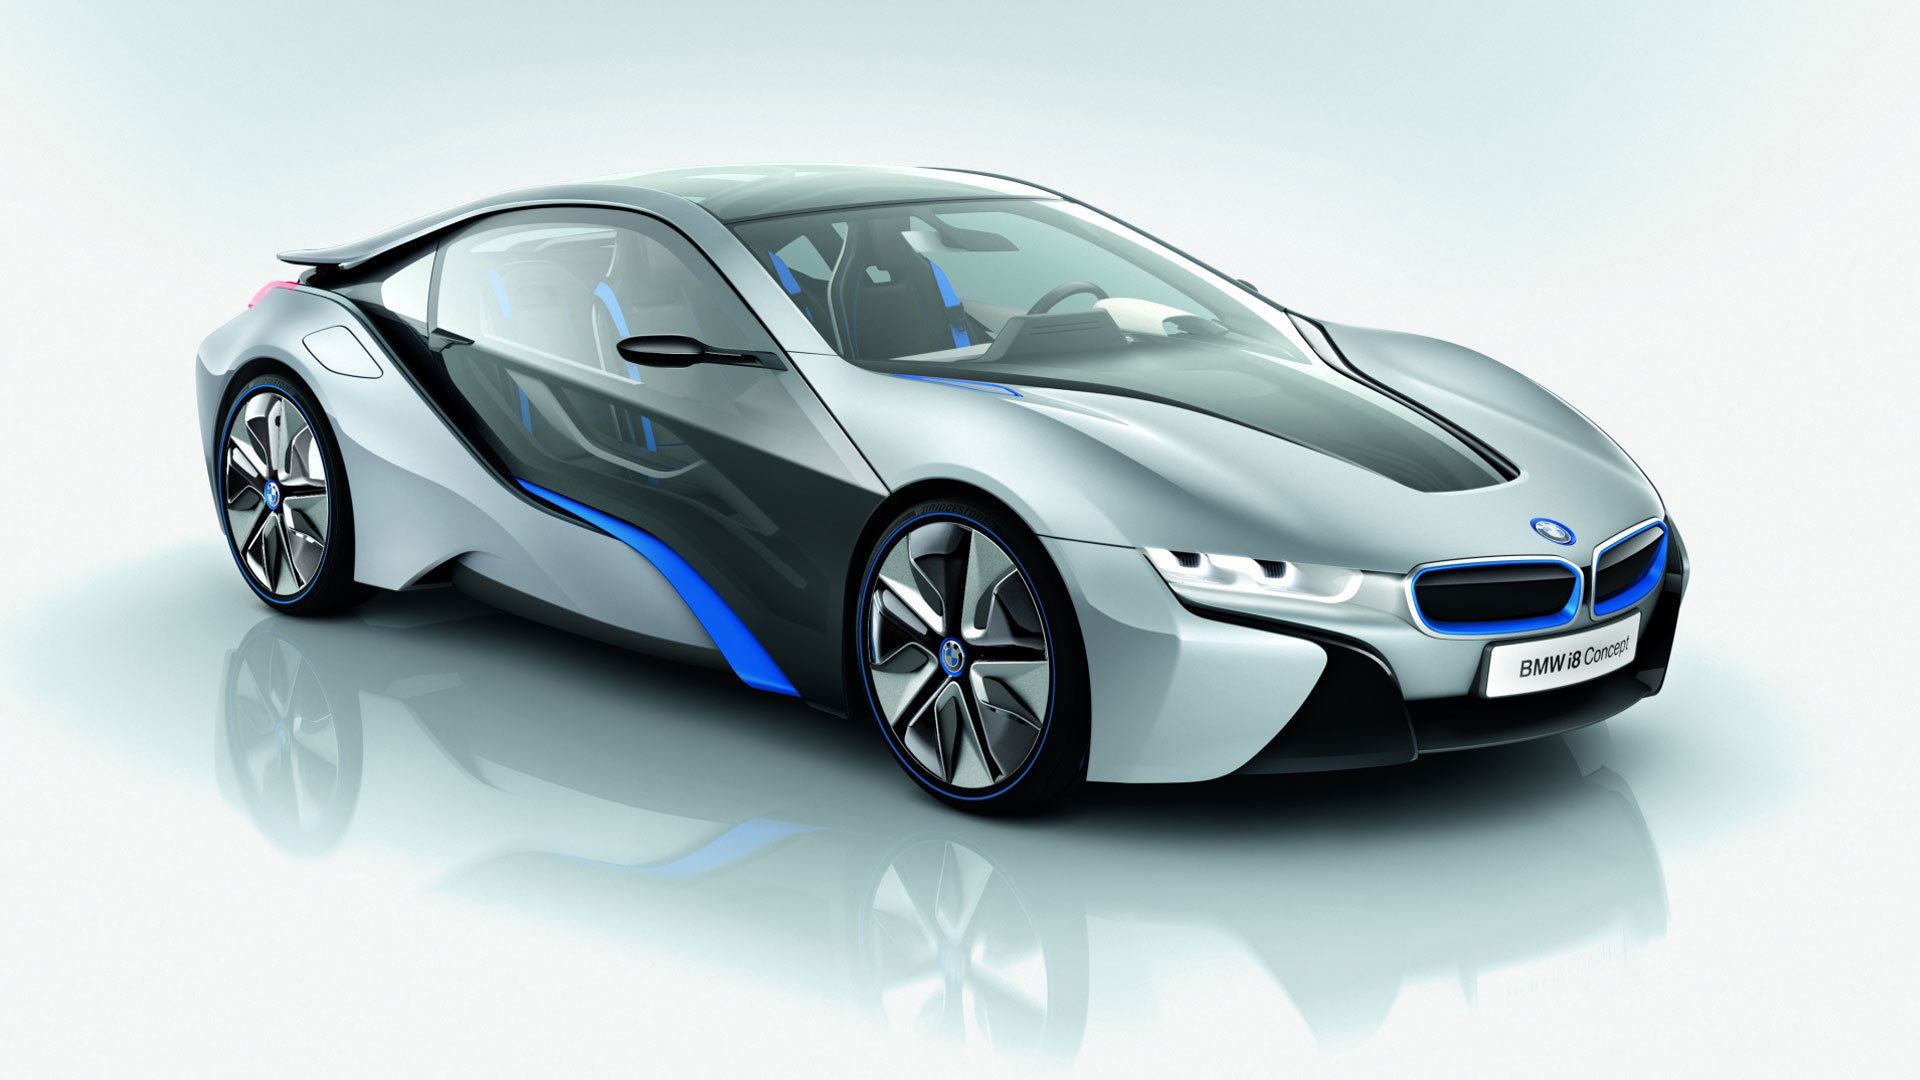 High Resolution Bmw I8 Full Hd Wallpaper Id 126962 For Desktop